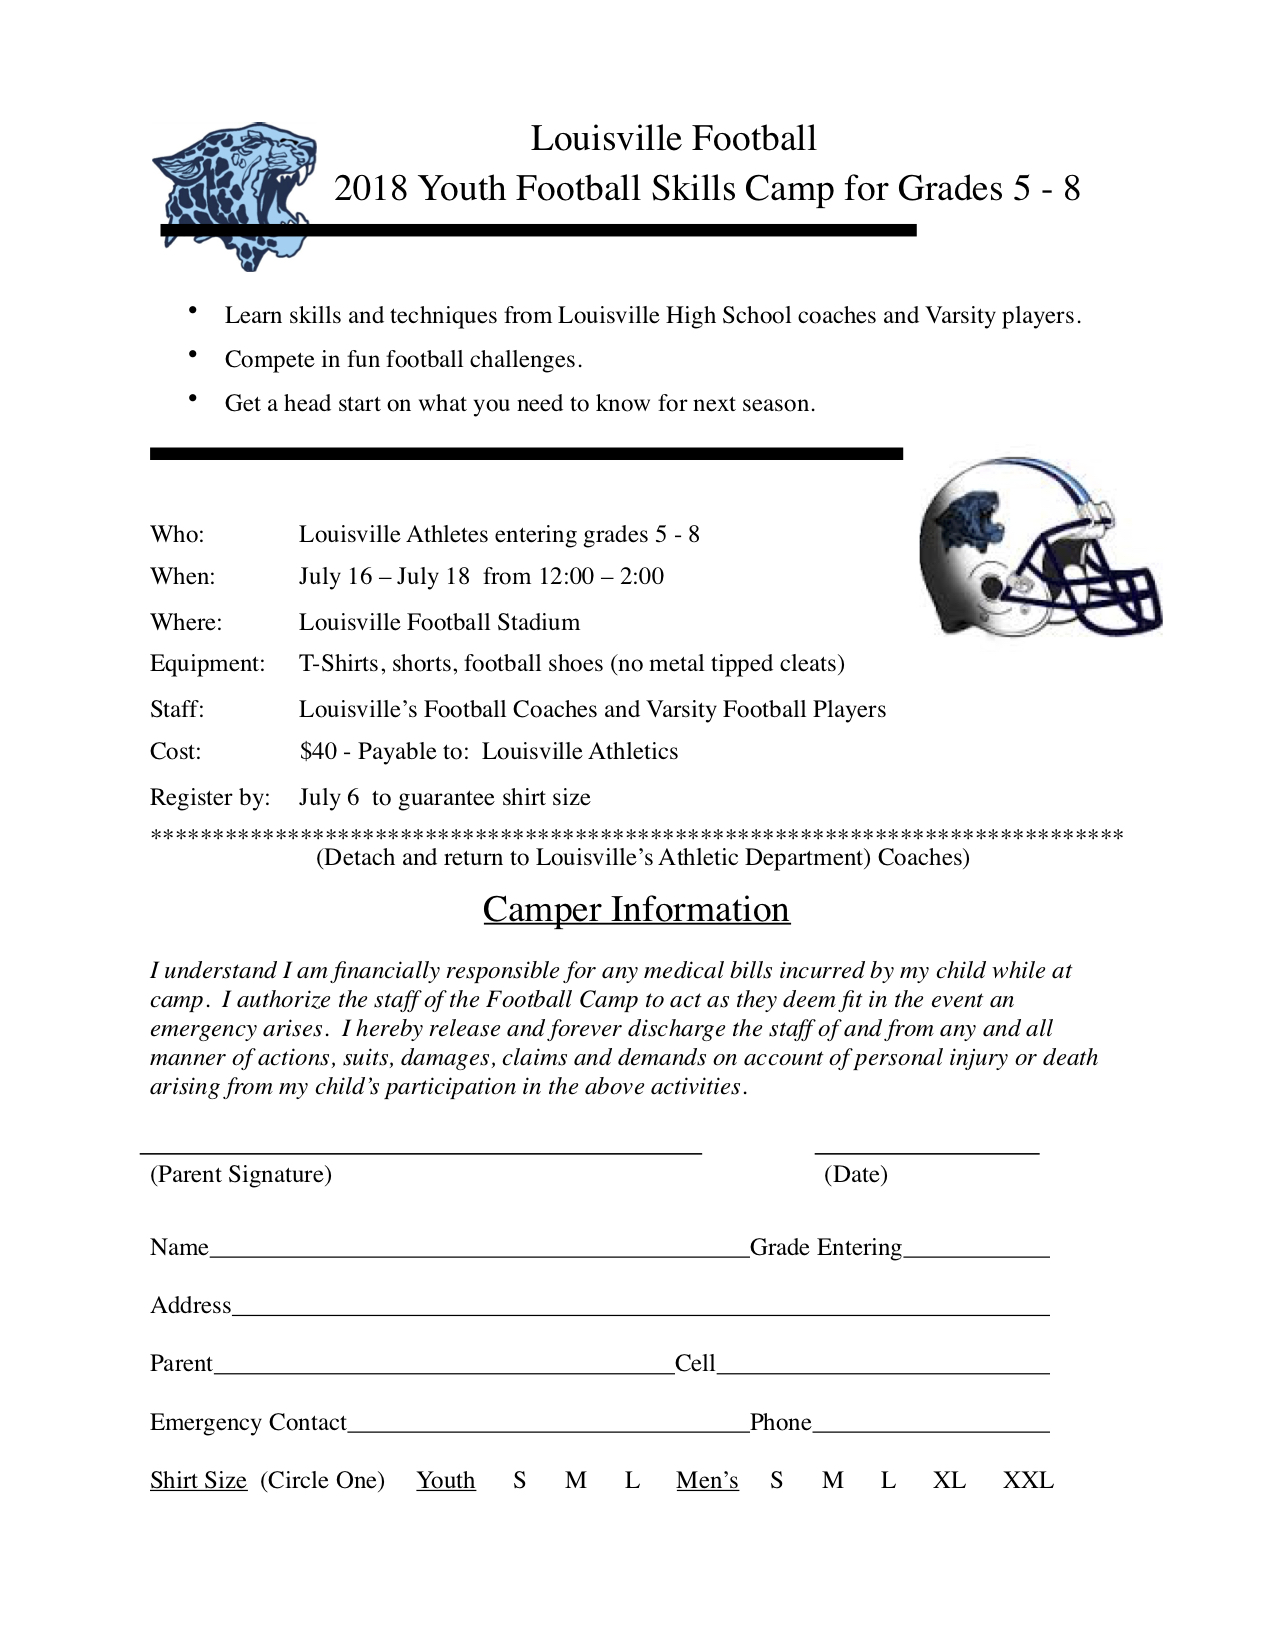 Louisville Leopards Youth Camp 2018 Form